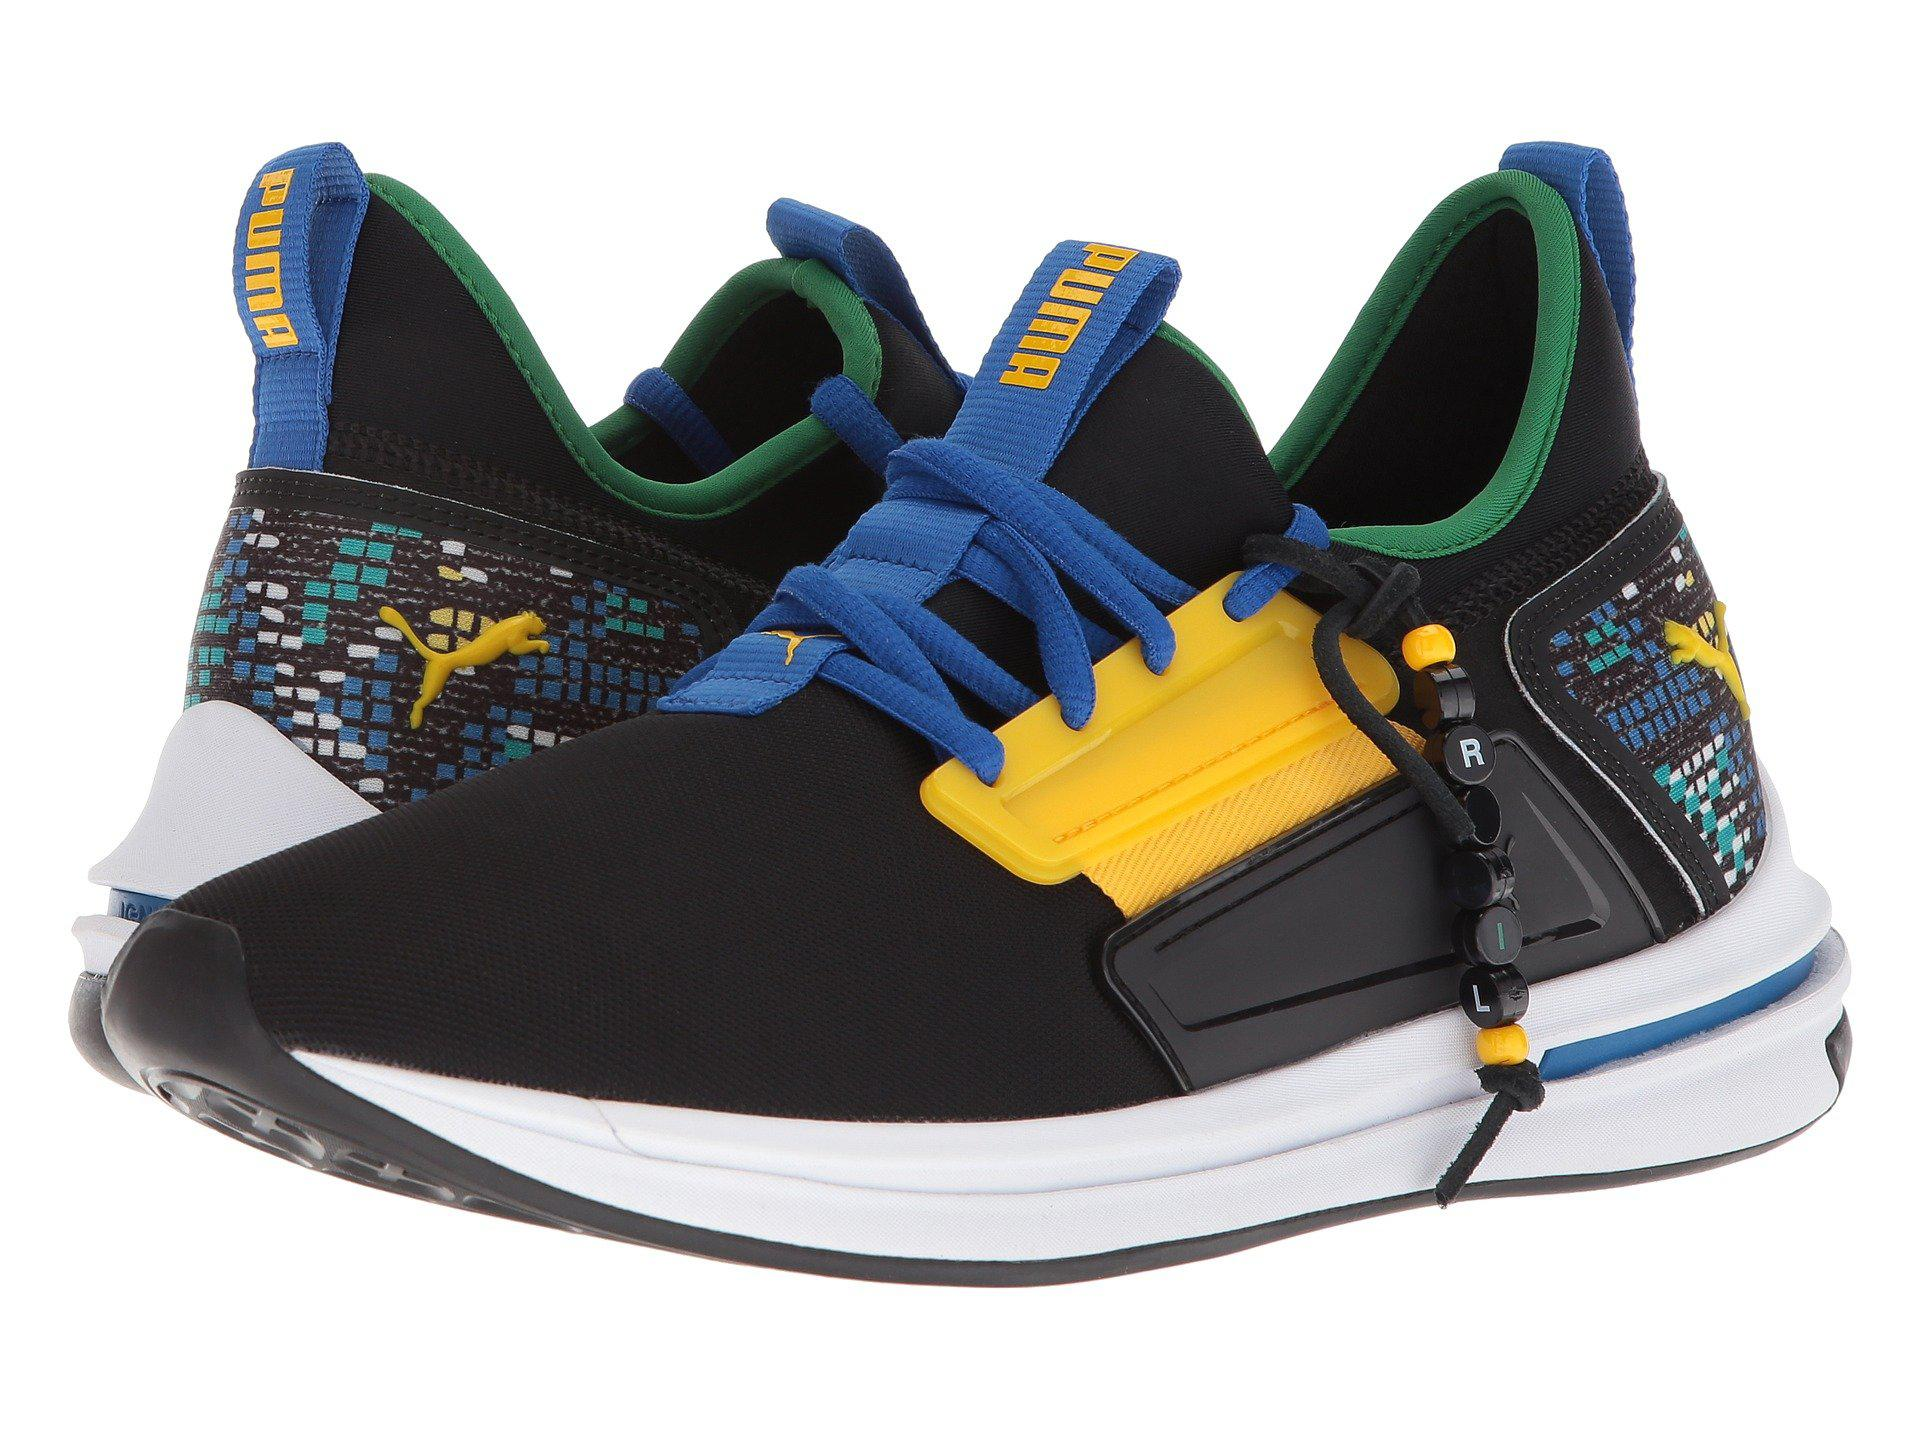 43a34c22985 ... Lyst - Puma Ignite Limitless Sr Carnival in Black for Men - Save .